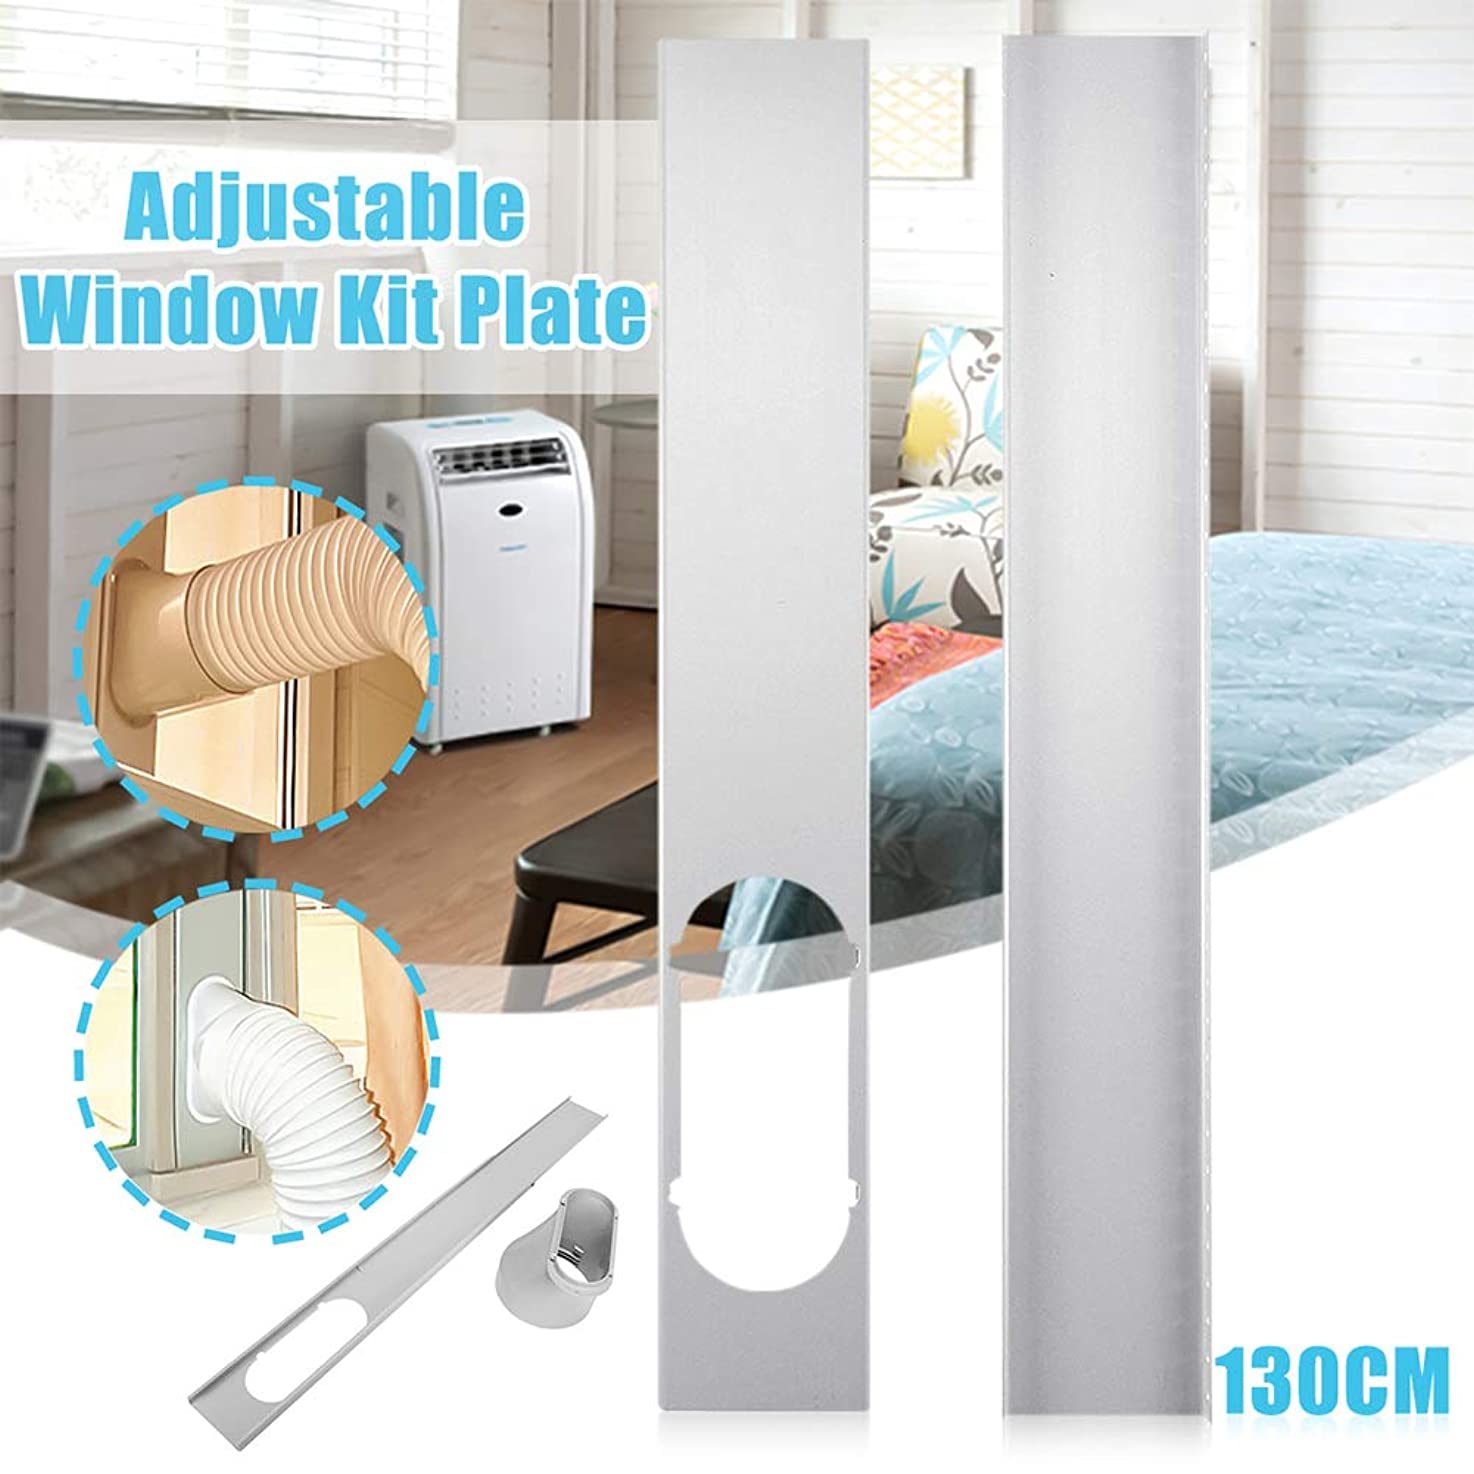 bromrefulgenc Universal Window Seal,Window Kit Plate for Air Conditioner and Tumble Dryer-Works with Every Air-Conditioning Unit - Air Exchange Guards and Adhesive Fastener 2# nehicksblznle4